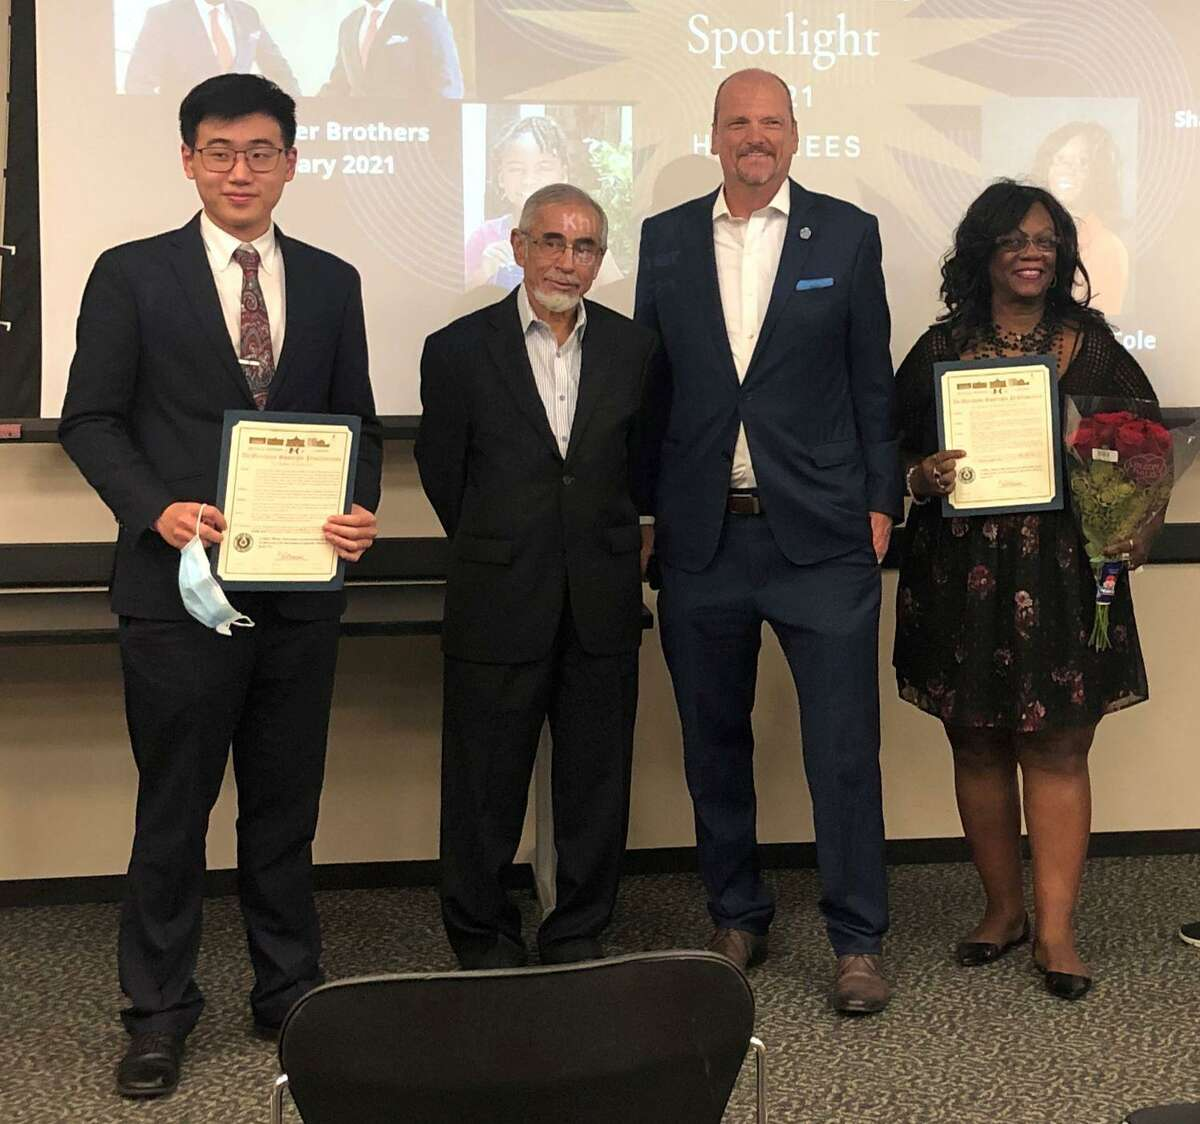 Pictured from left during the latest DeMerchant Spotlight Quarterly Award ceremony are John Lin, Shaizad Chatriwala, Commissioner DeMerchant and Robin Cole.